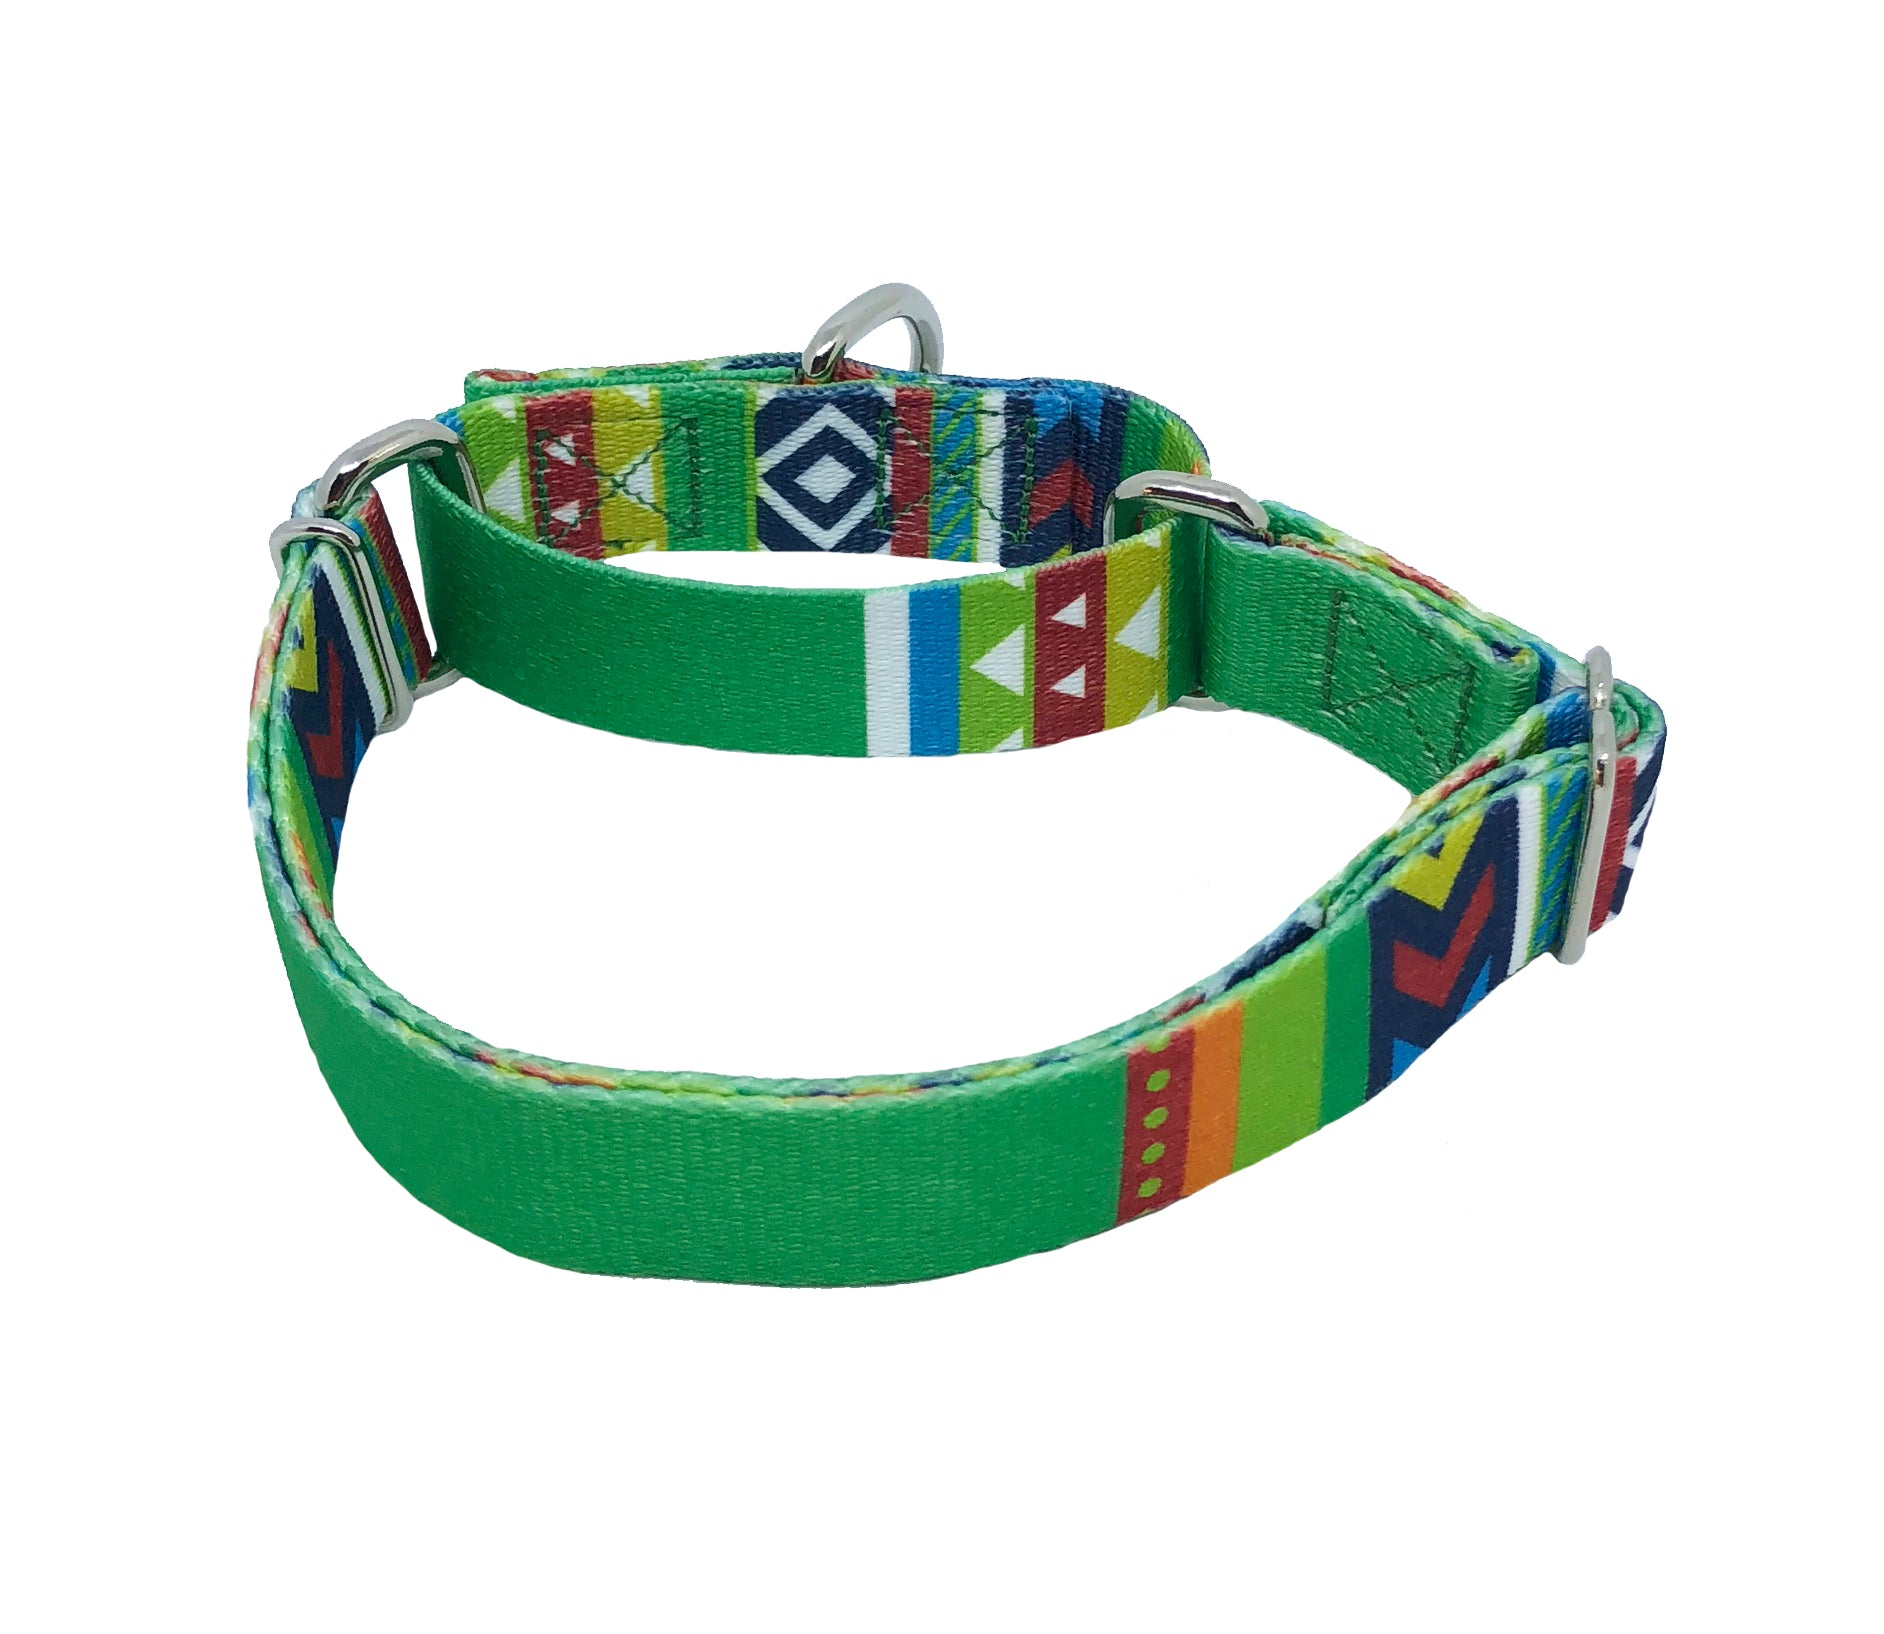 Green Blazer Martingale Dog Collar